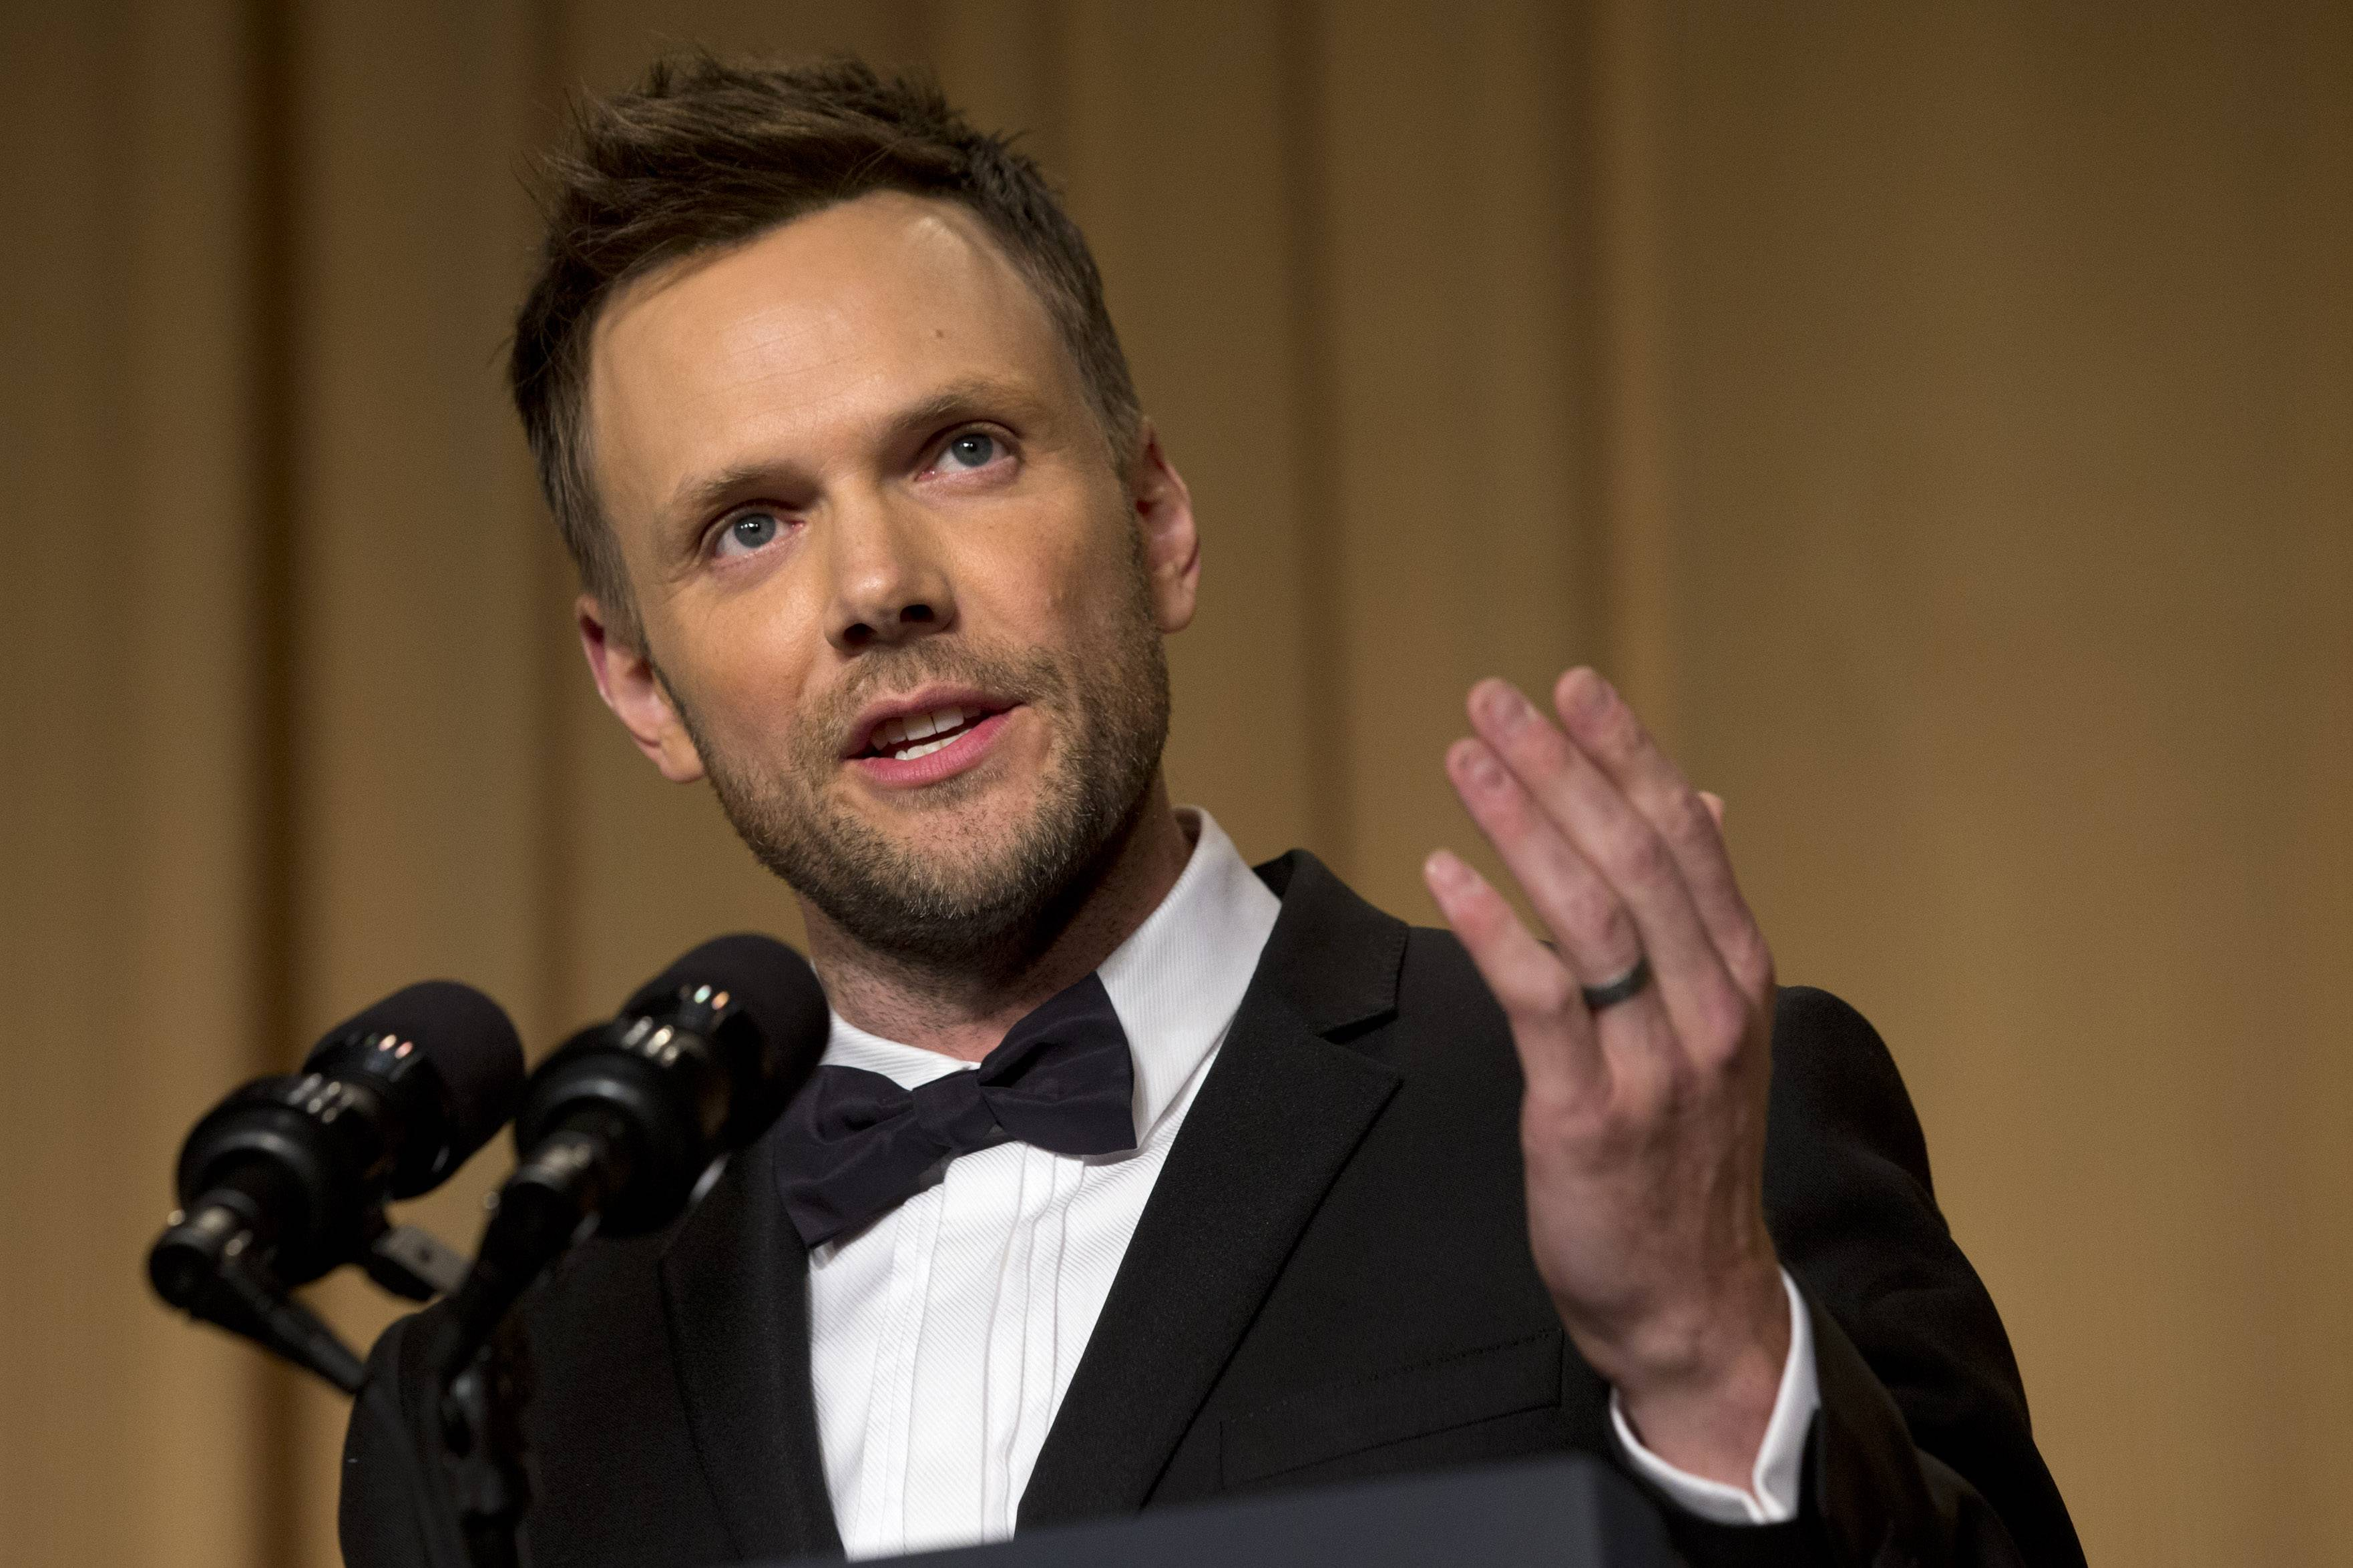 Actor and comedian Joel McHale makes jokes at the centennial dinner of the White House Correspondents' Association at the Washington Hilton Hotel Saturday.